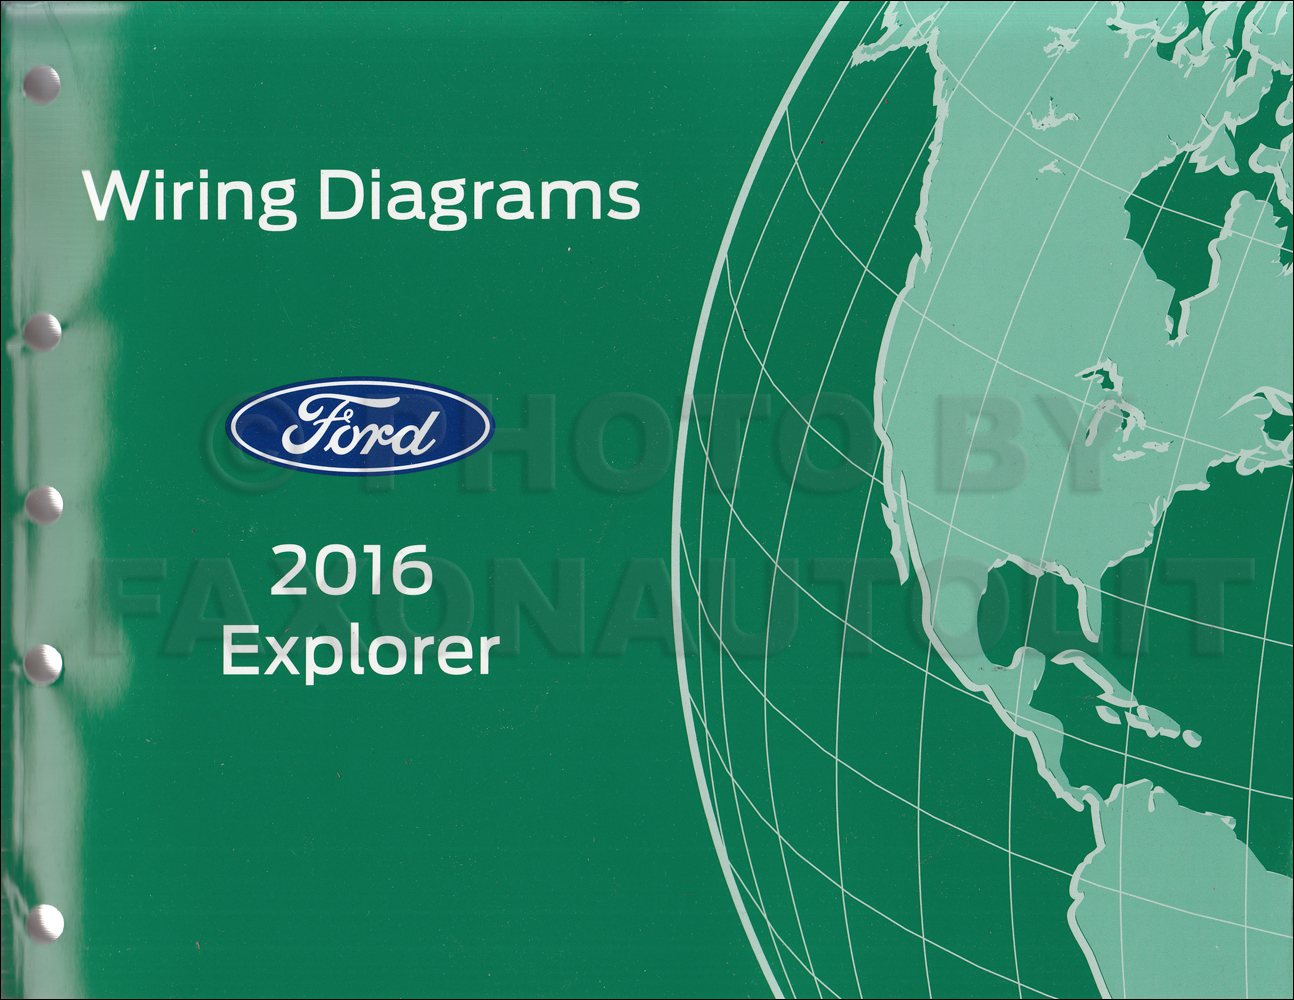 2016 Ford Explorer Electrical Diagram - Auto Electrical Wiring Diagram •